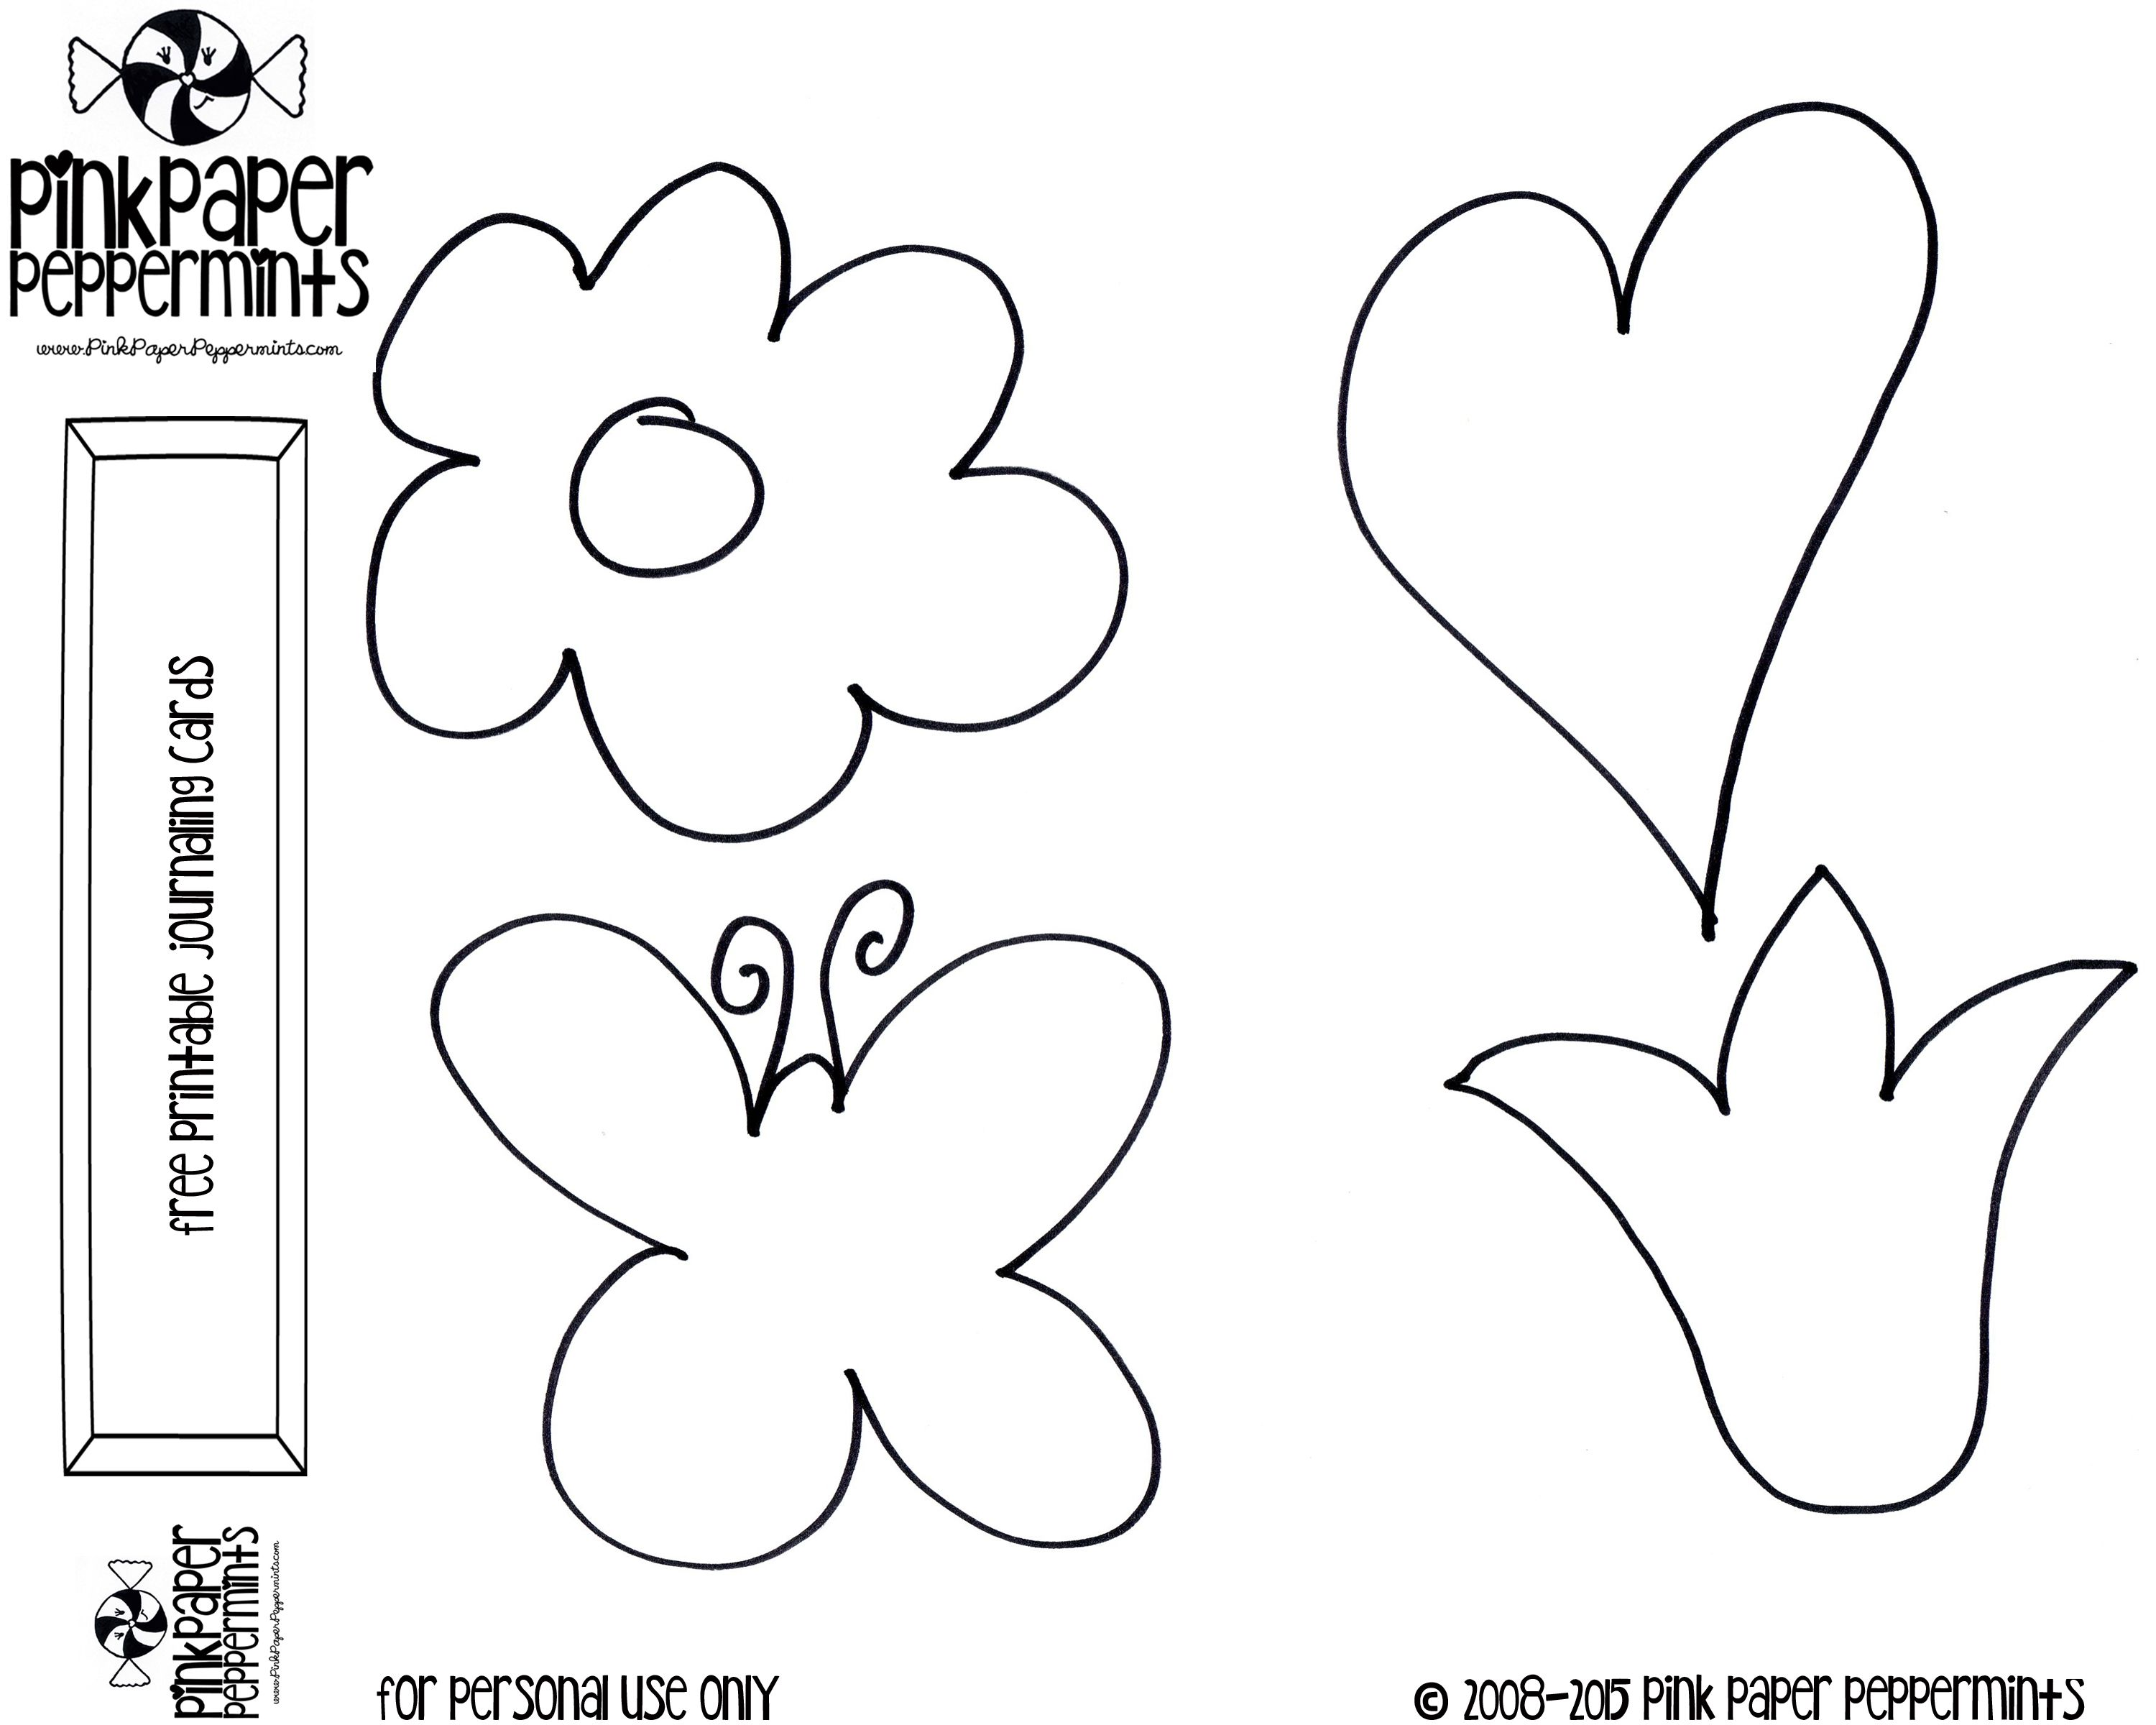 Fine 10 Envelope Template Indesign Thick 100 Bill Template Shaped 1099 Pay Stub Template 2 Page Resume Layout Young 2.25 Button Template Dark2.5 Button Template Spring Shapes Template   Cut Out In Different Sheets And Make A ..